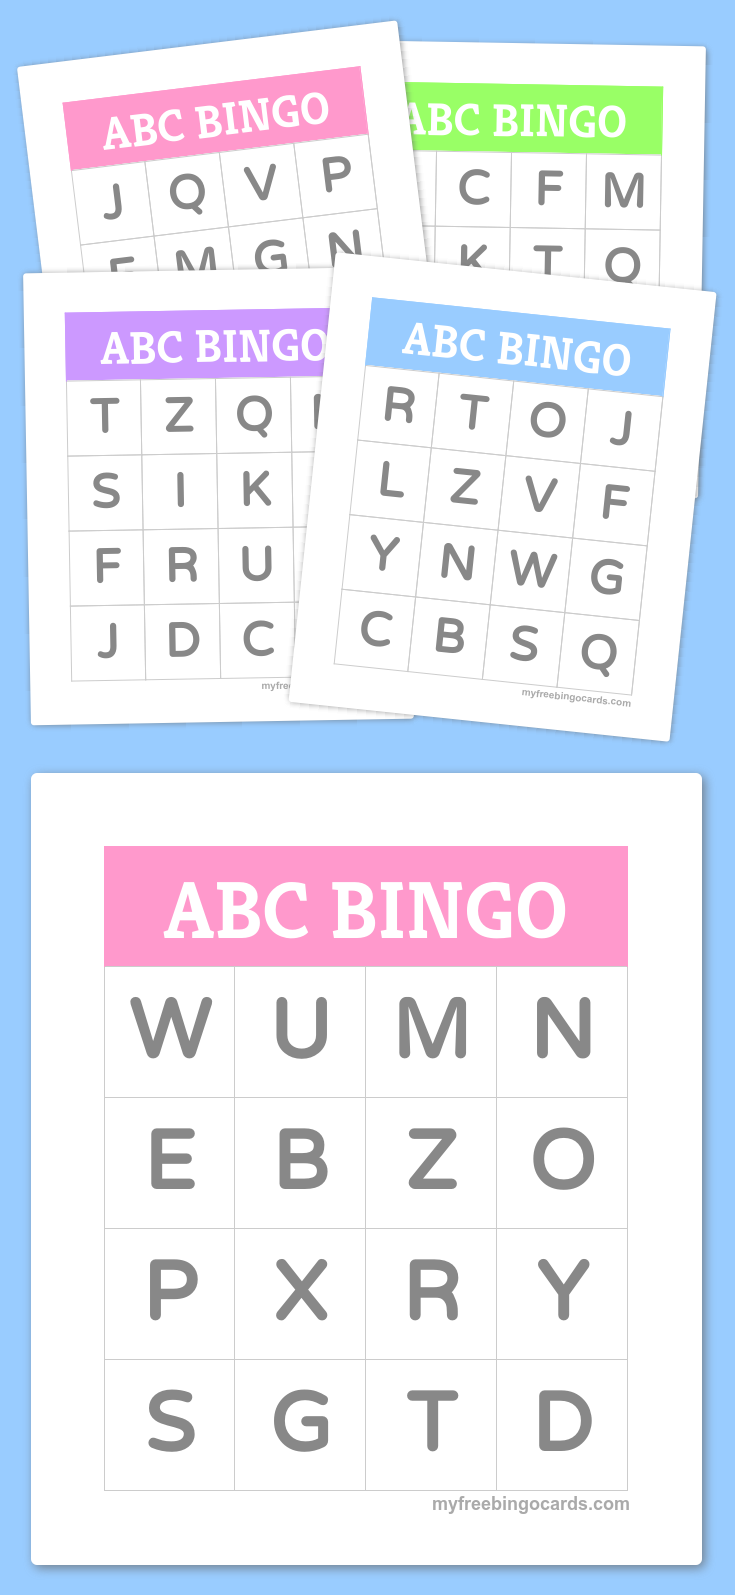 Free printable bingo cards pinterest alphabet bingo kids abc kids abc alphabet bingo great for learning the alphabet also available as a free online game spiritdancerdesigns Choice Image